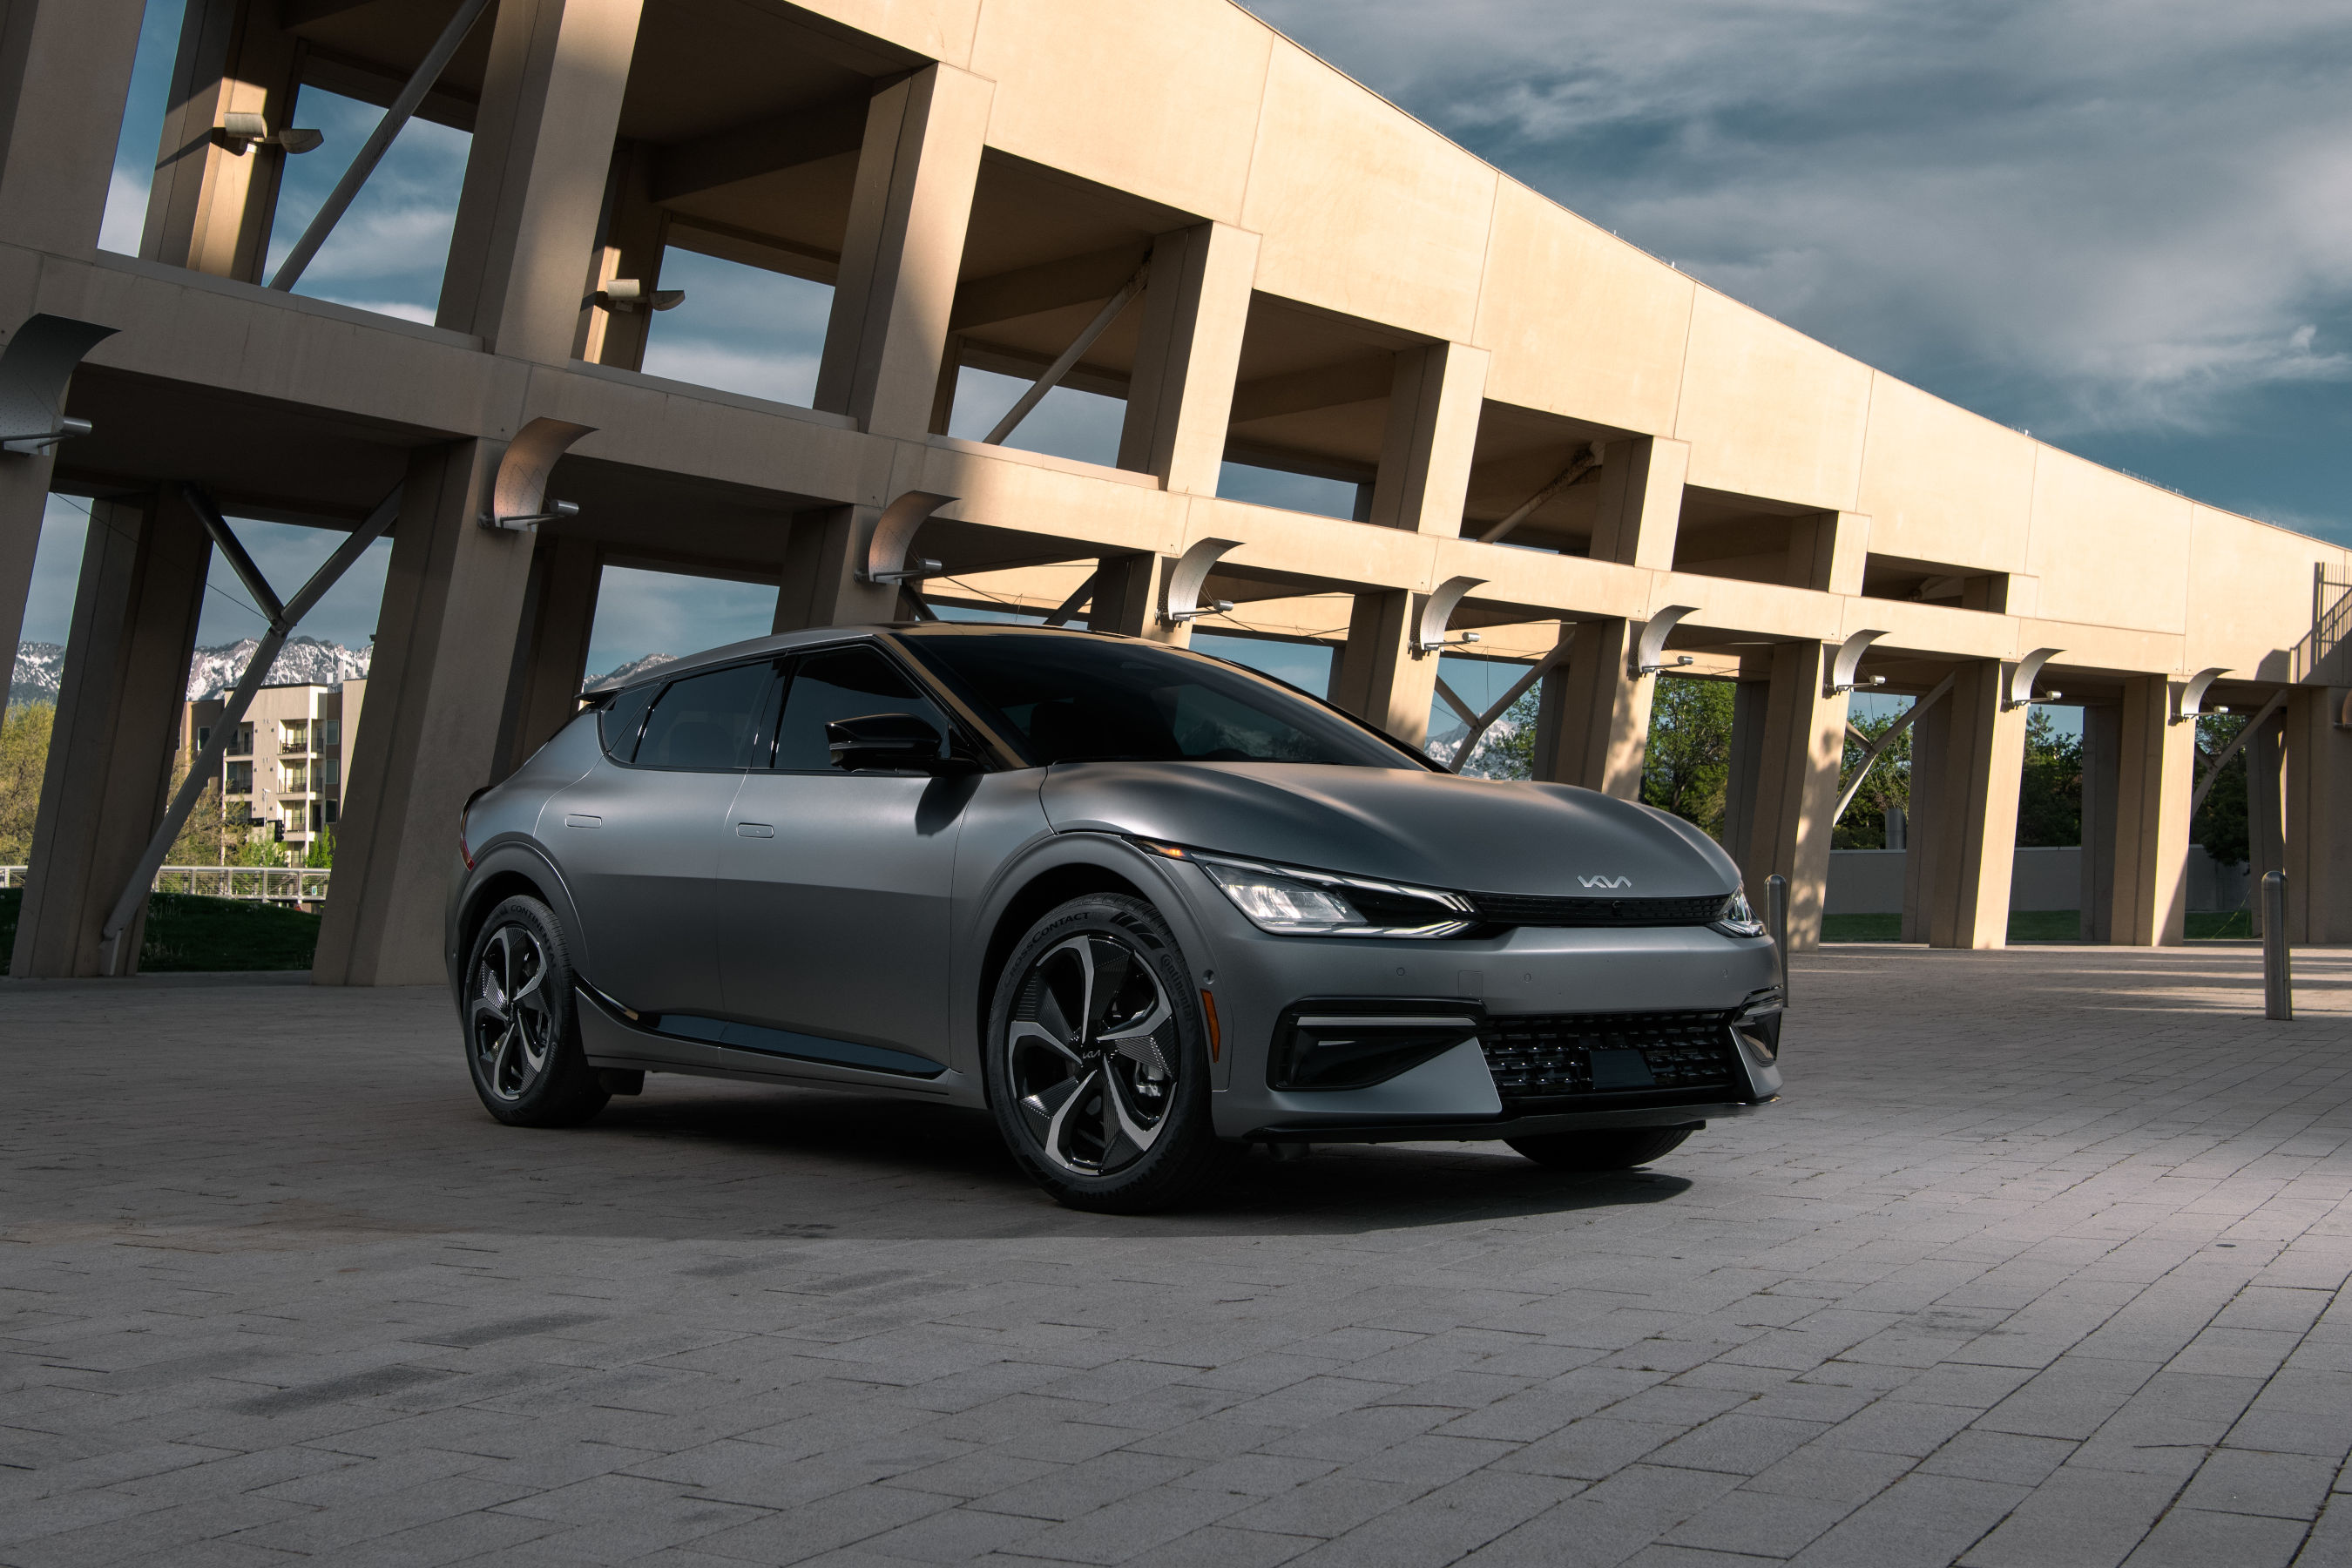 All-new EV6 is Kia's first dedicated EV and signals the beginning of the brand's transformative 'Plan S' electrification strategy.